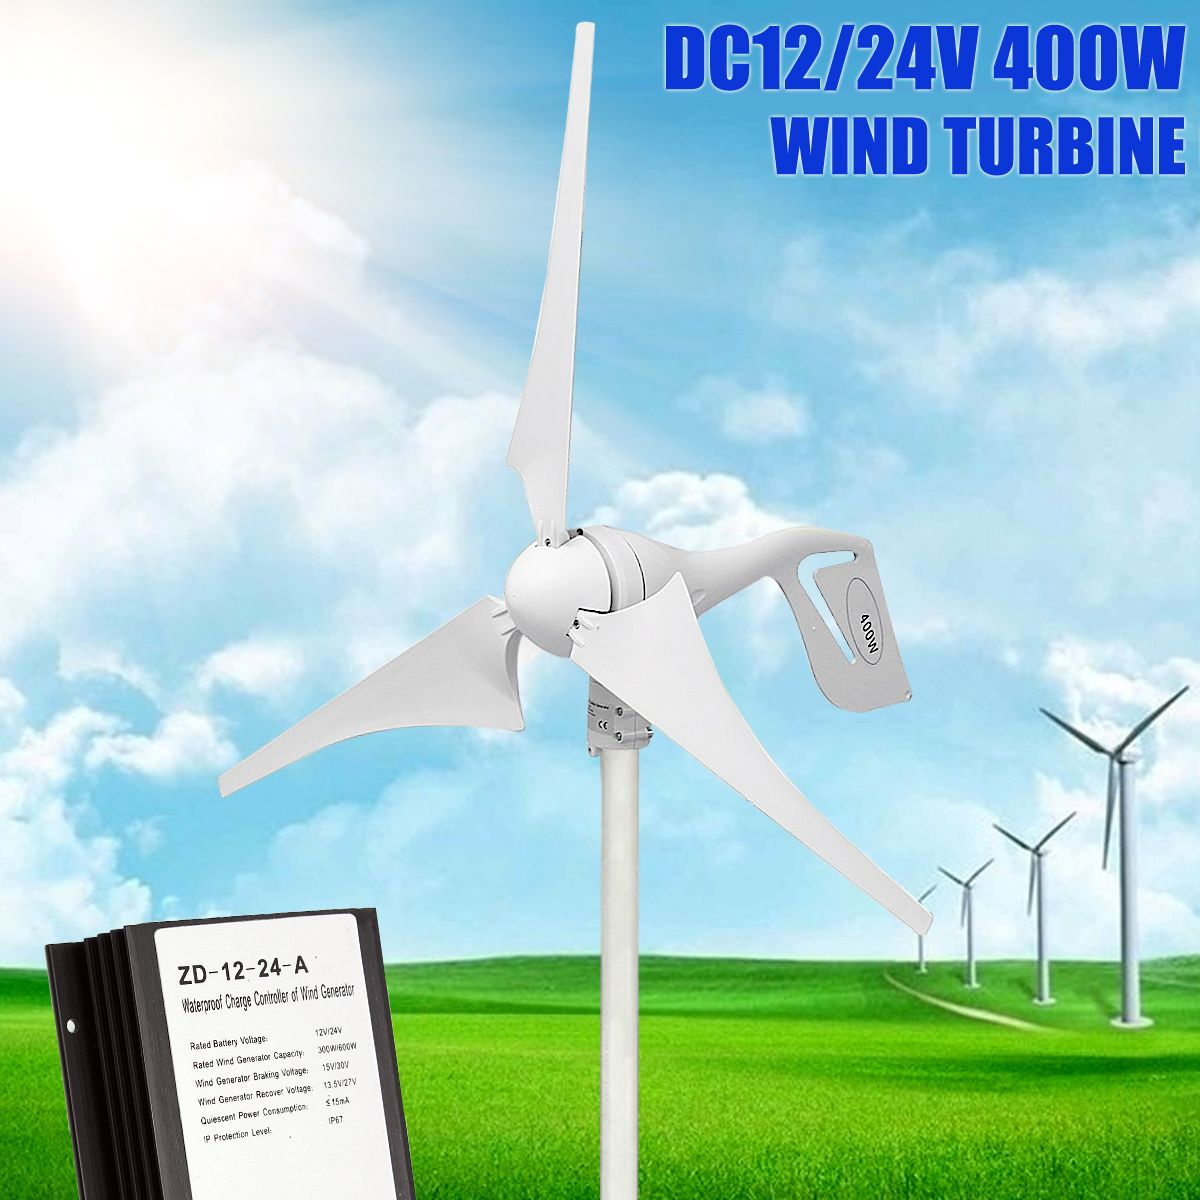 800/MINRPM 400W Wind-Turbine Generator DC 12V/24V 3 Blade with Charge Controller Waterproof White